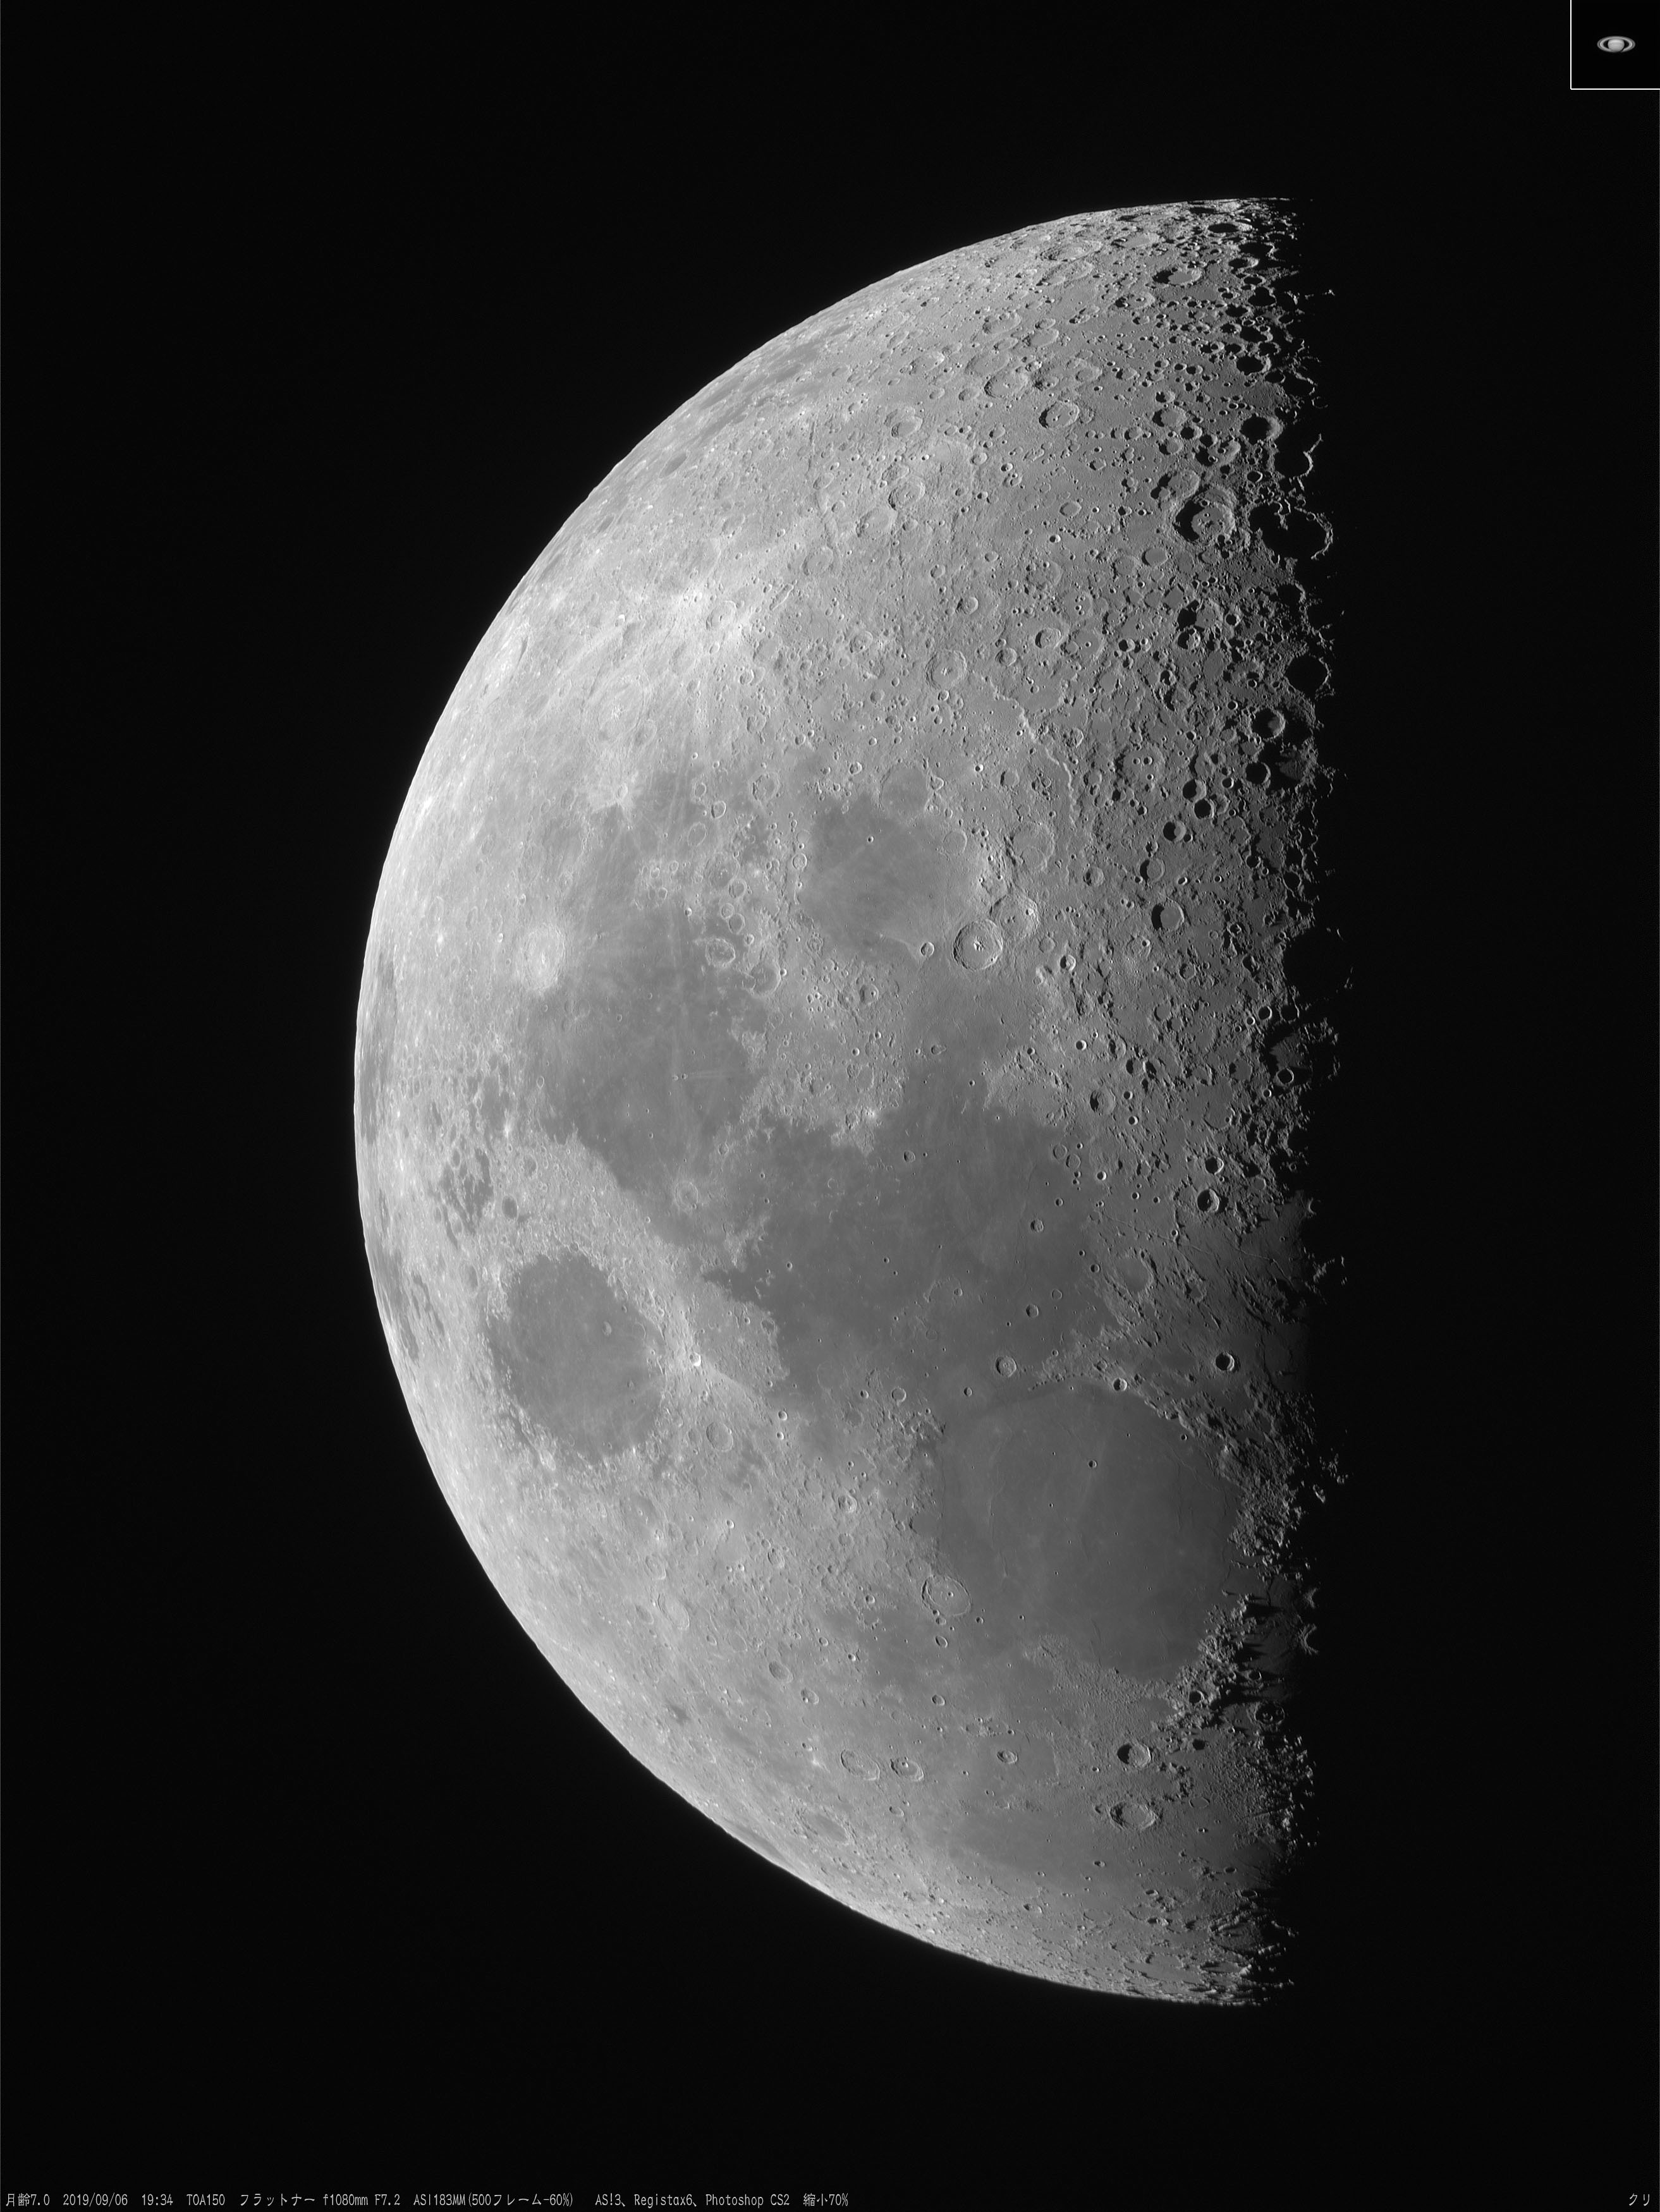 20190906MoonAge7_0(TOA150-1080mm ASI183MM)_193343_500-60%